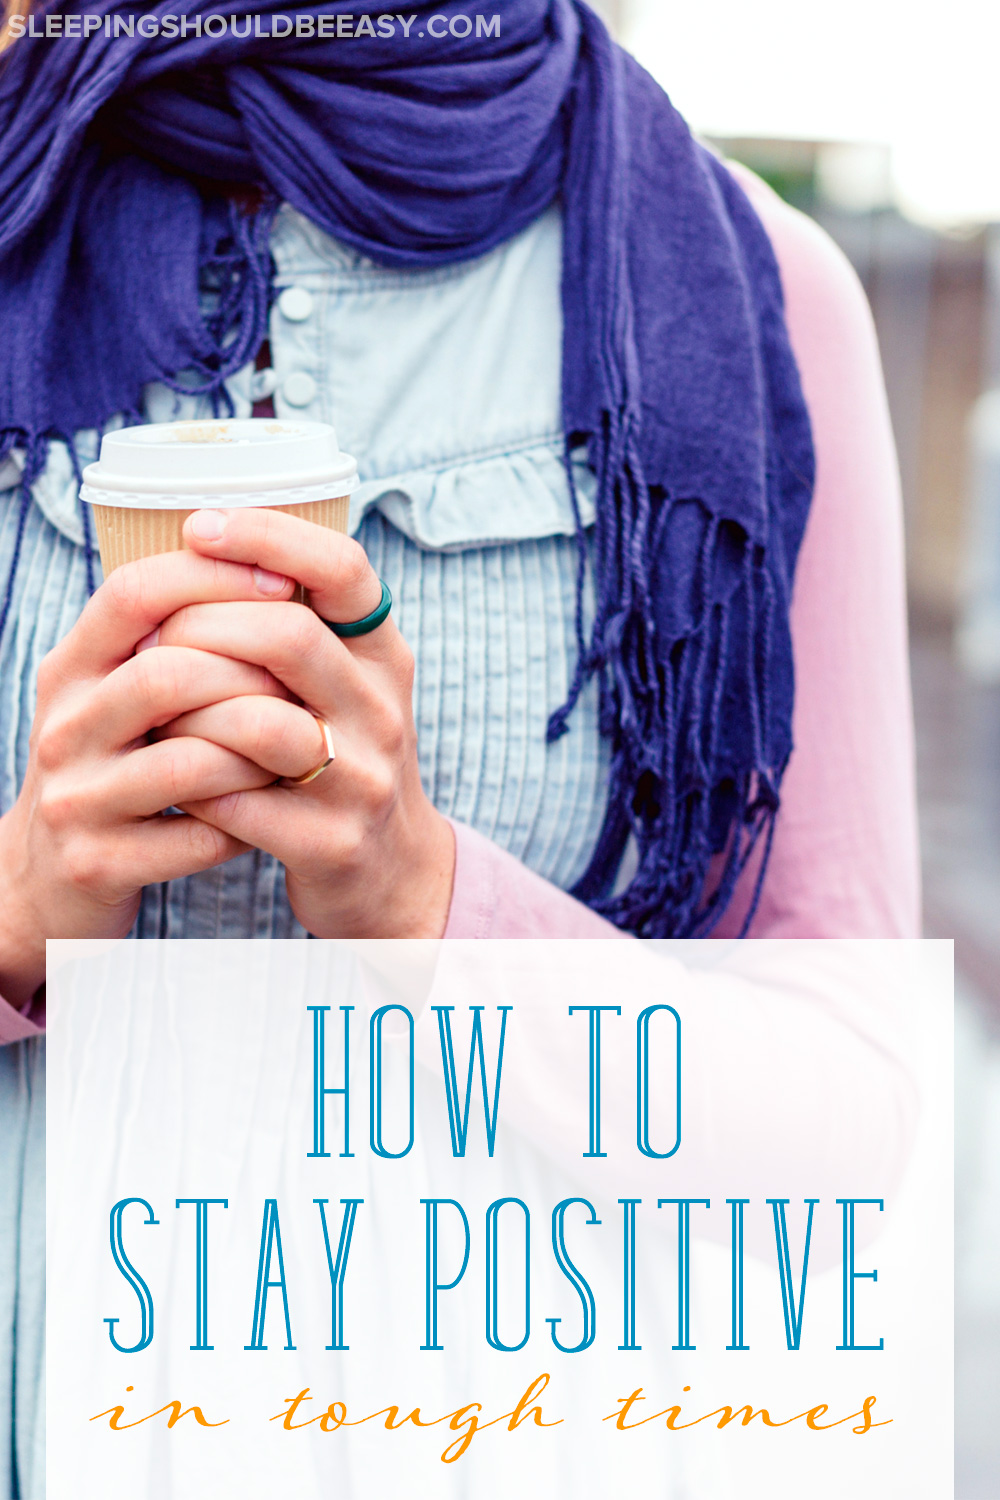 For many parents, difficult times are hard to overcome, and challenges never seem to end. Here's how to stay positive when pregnant and times are tough.